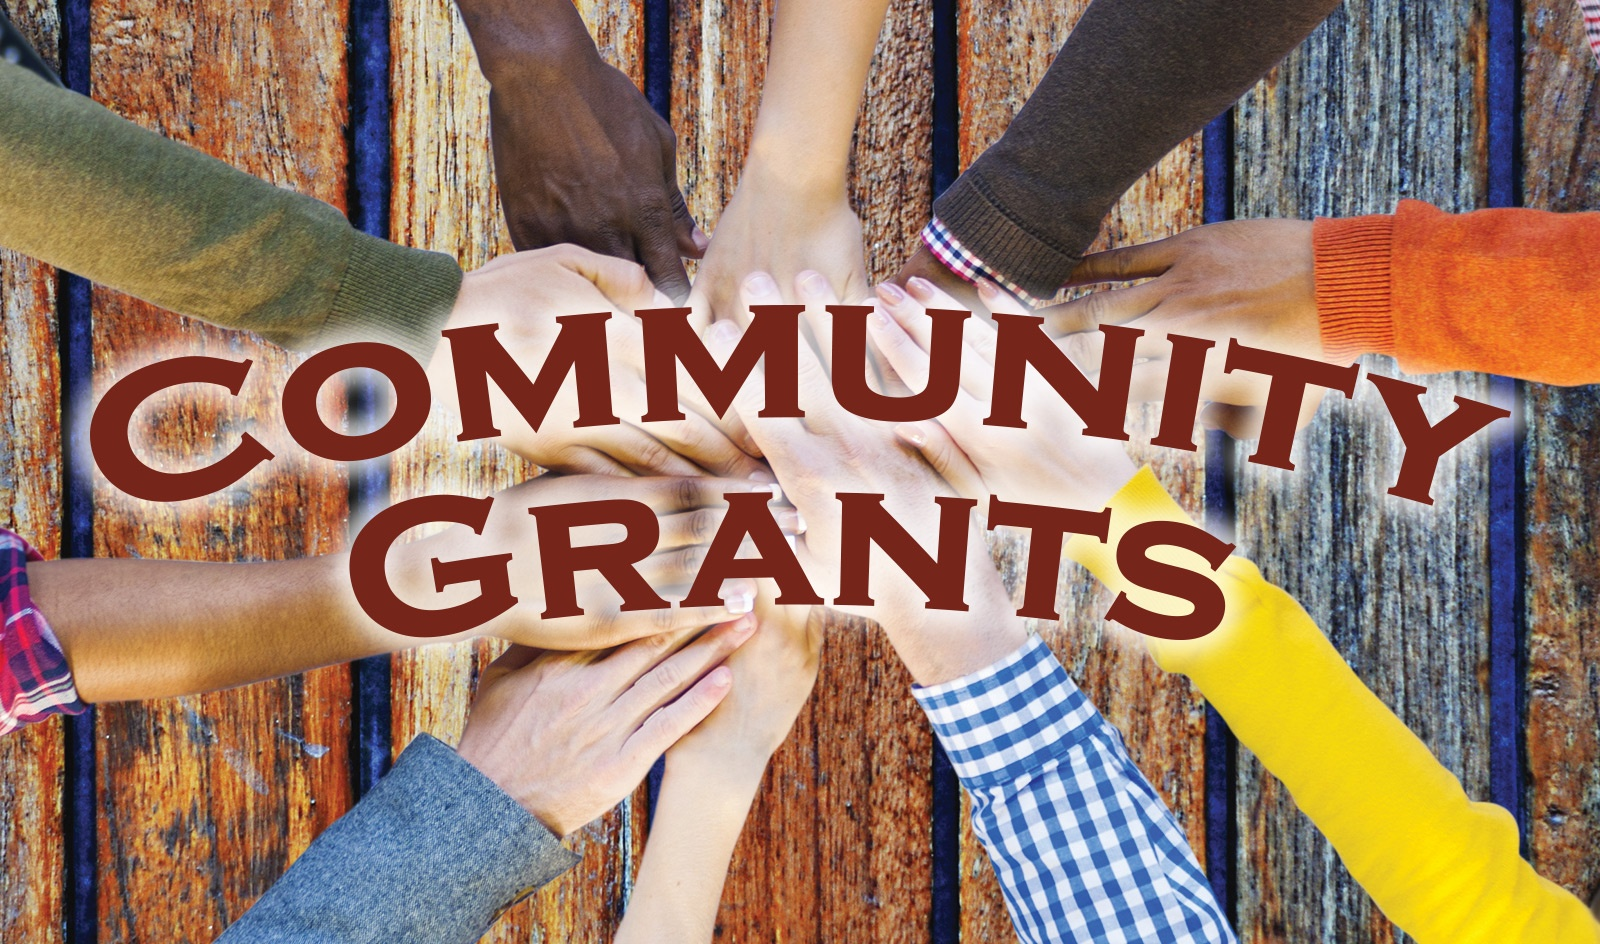 Community Grants Application Period Reno Rodeo Foundation